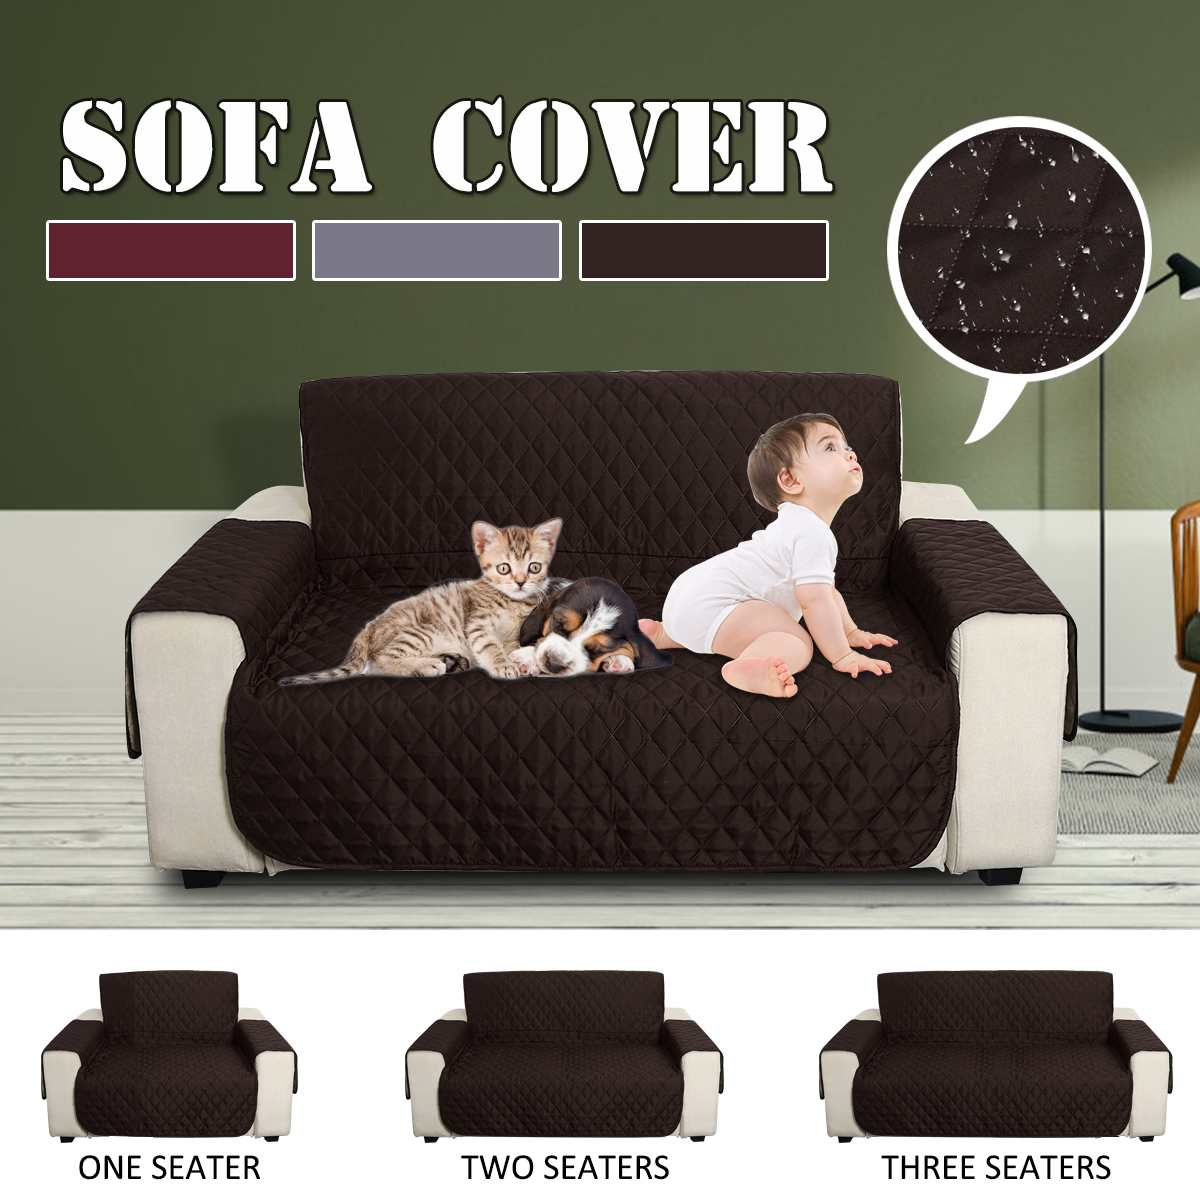 Superb Us 13 19 54 Off 1 2 3 Seaters Sofa Cover Waterproof Quilted Anti Slip Couch Chair Furniture Protector Pad Pet Dogs Slipcovers Mat For Livingroom In Short Links Chair Design For Home Short Linksinfo